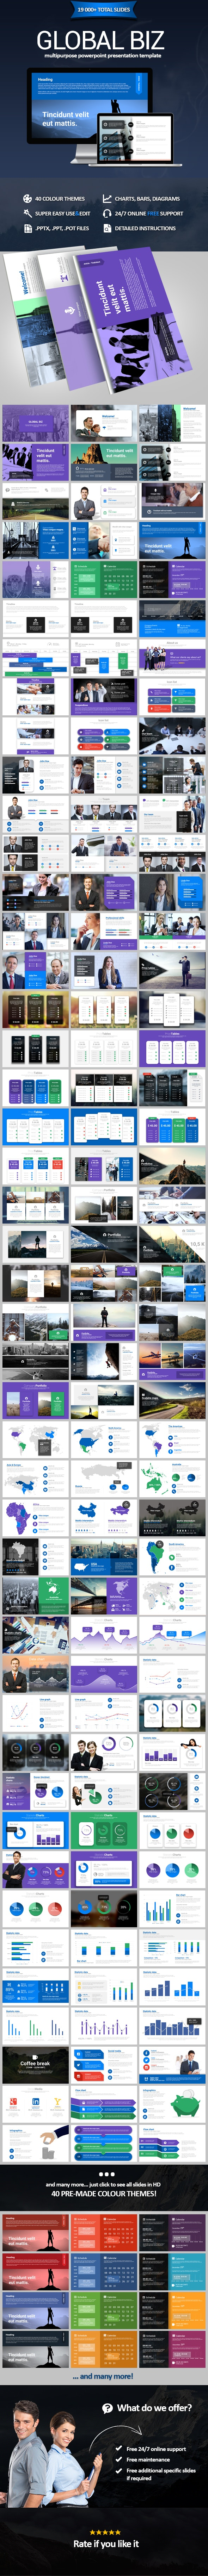 Global Biz Powerpoint Presentation Template - PowerPoint Templates Presentation Templates